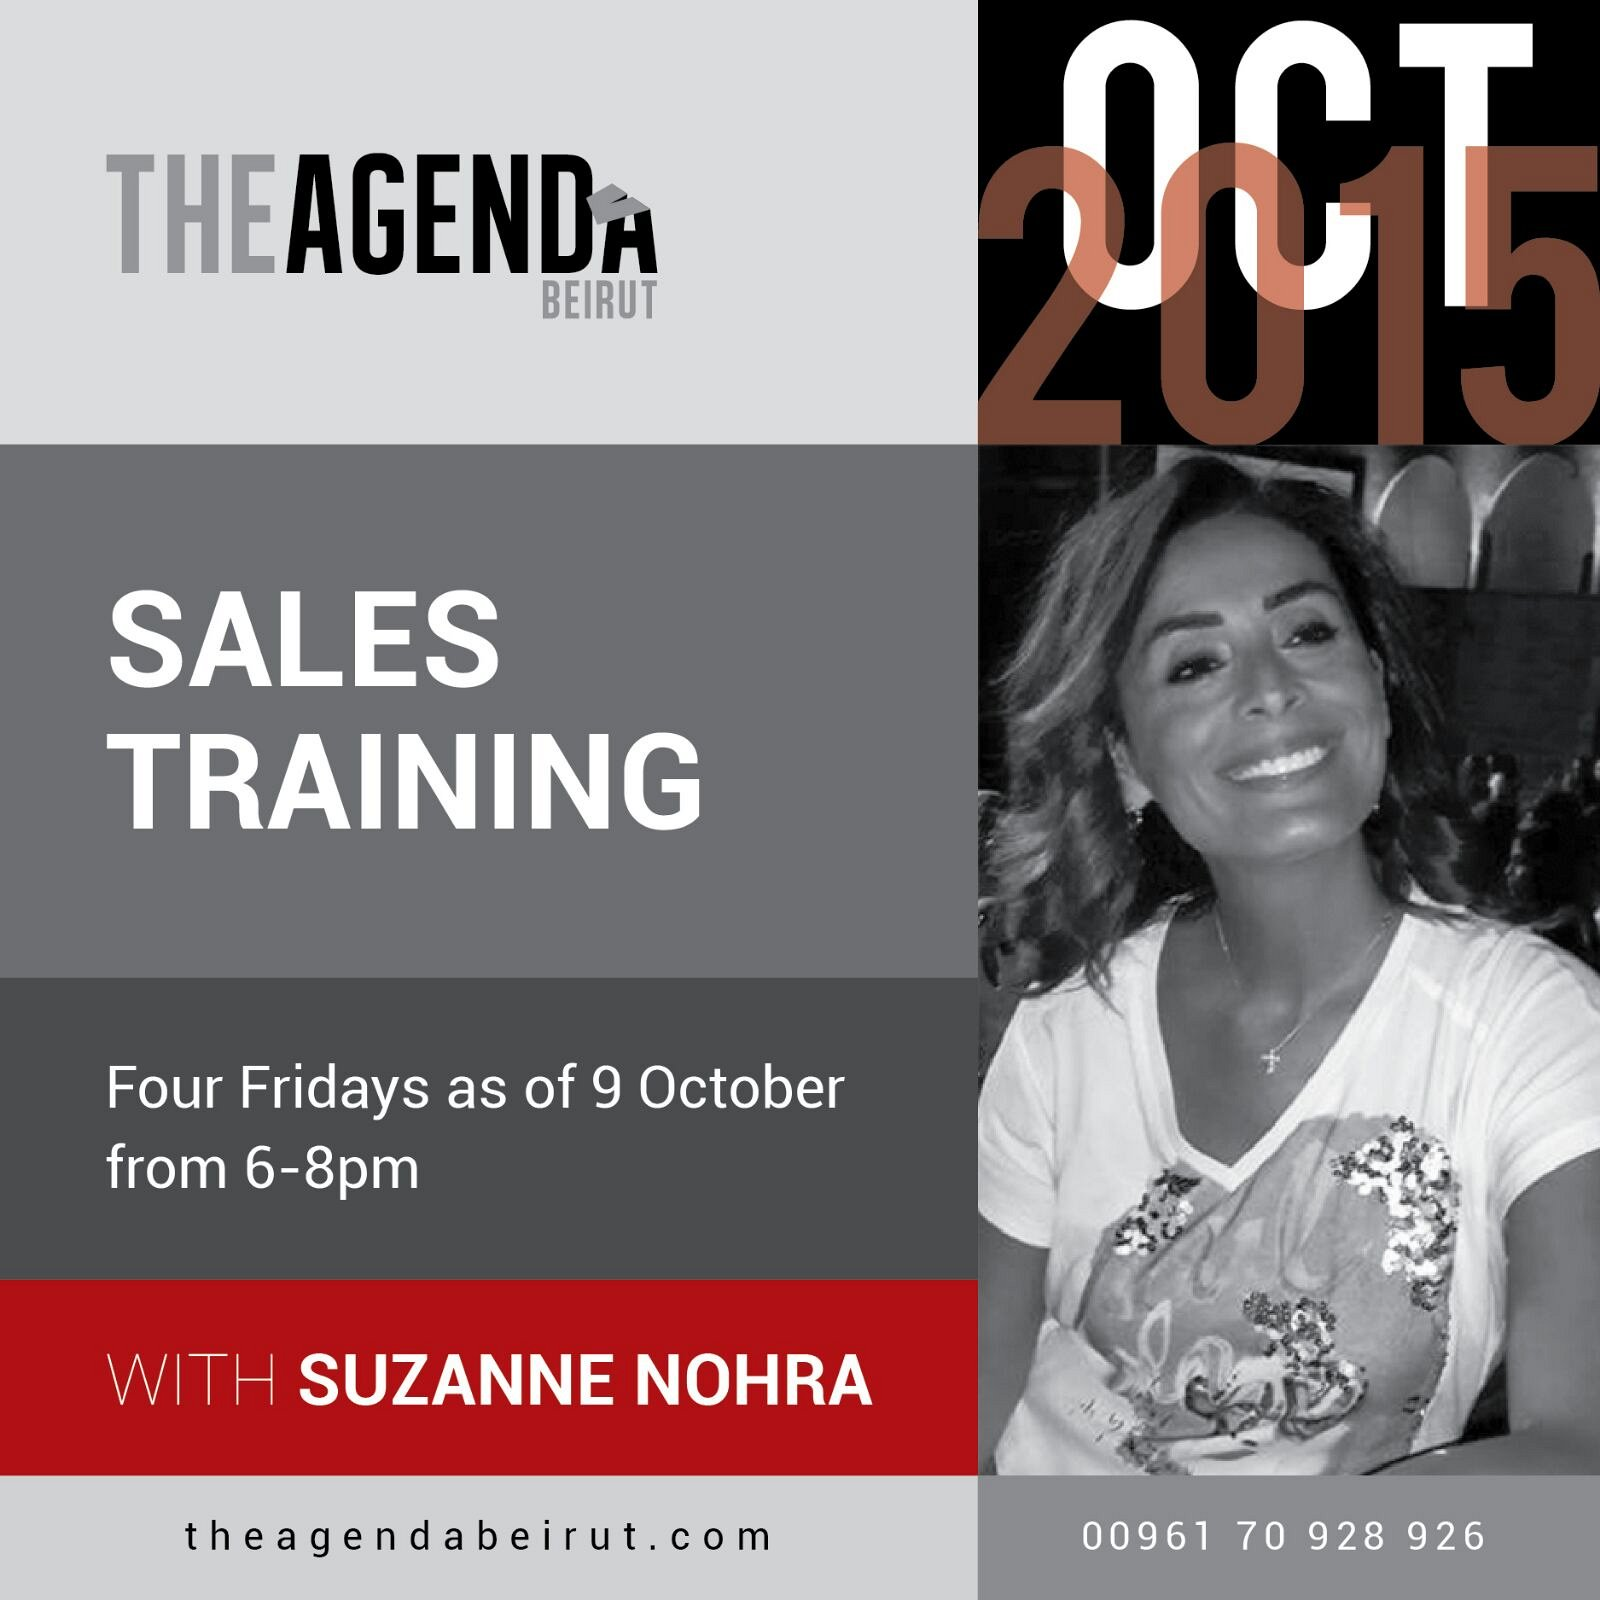 sales training with suzanne nohra at the agenda beirut lebtivity